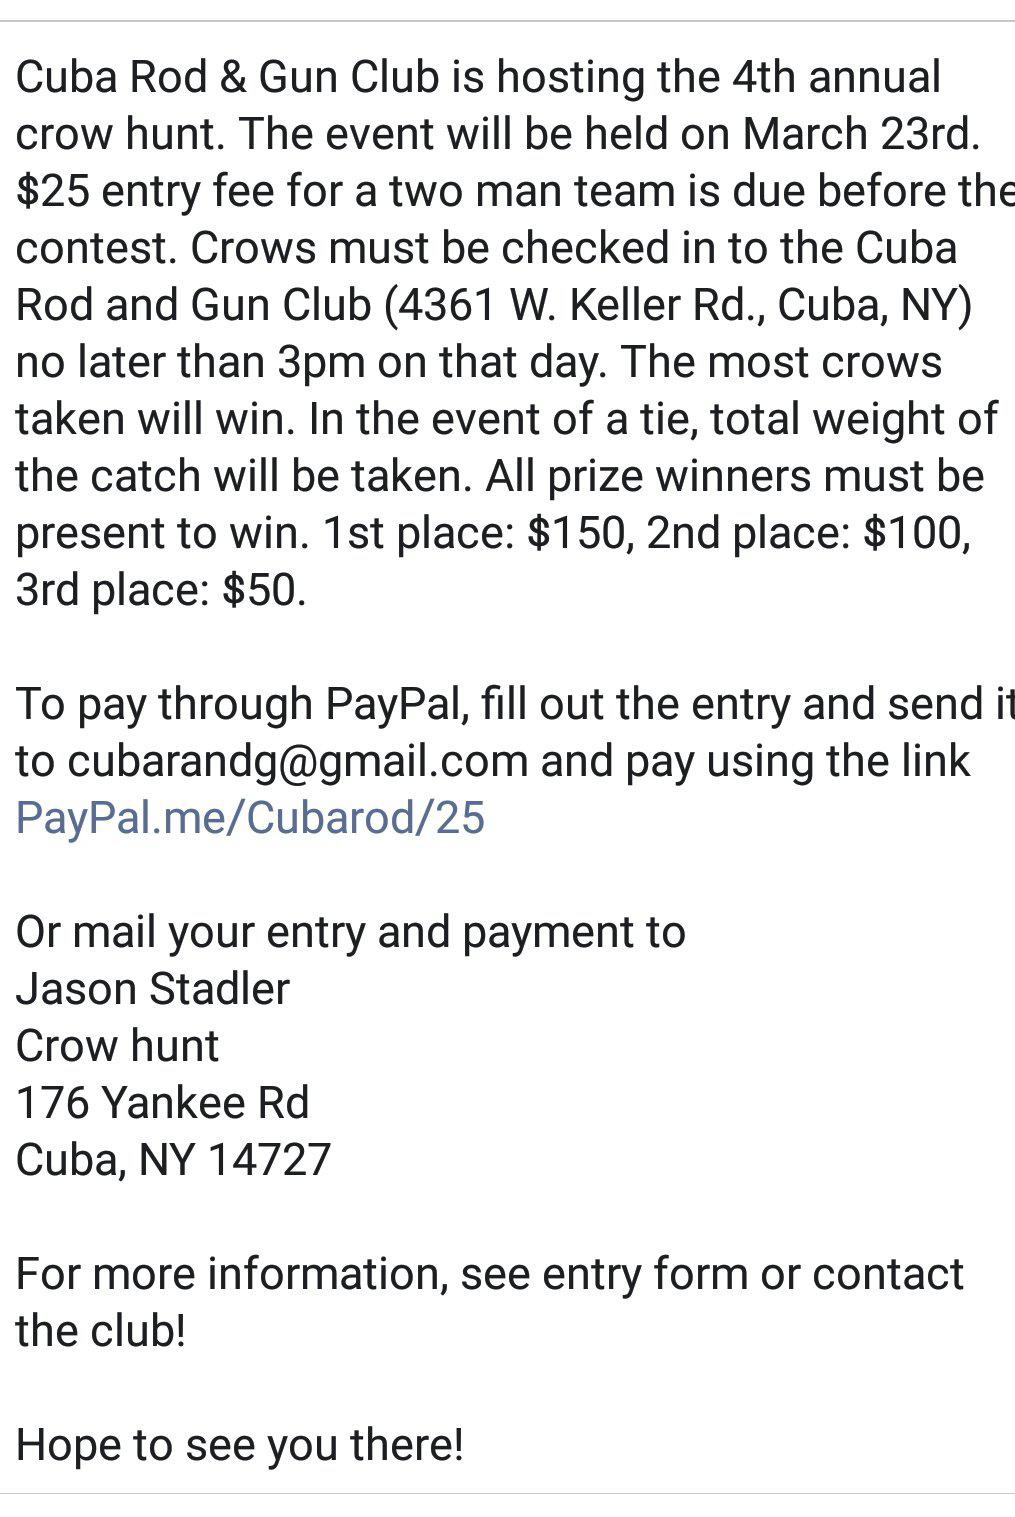 4th annual Crow hunting contest - Small Game and Predator Hunting